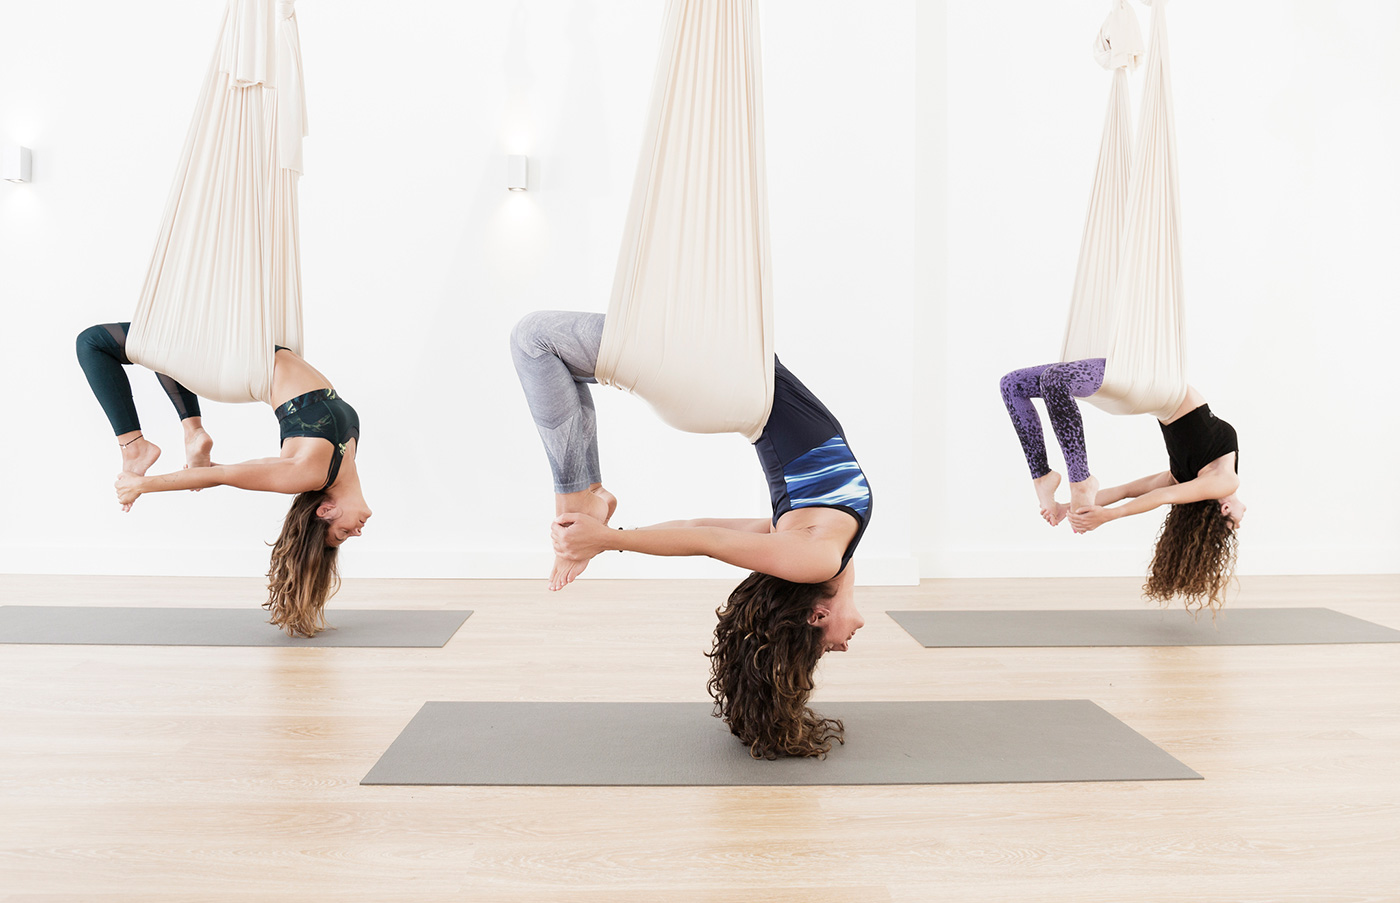 Aerial Yoga Fabric Panel Buy Online At Yogishop Yoga